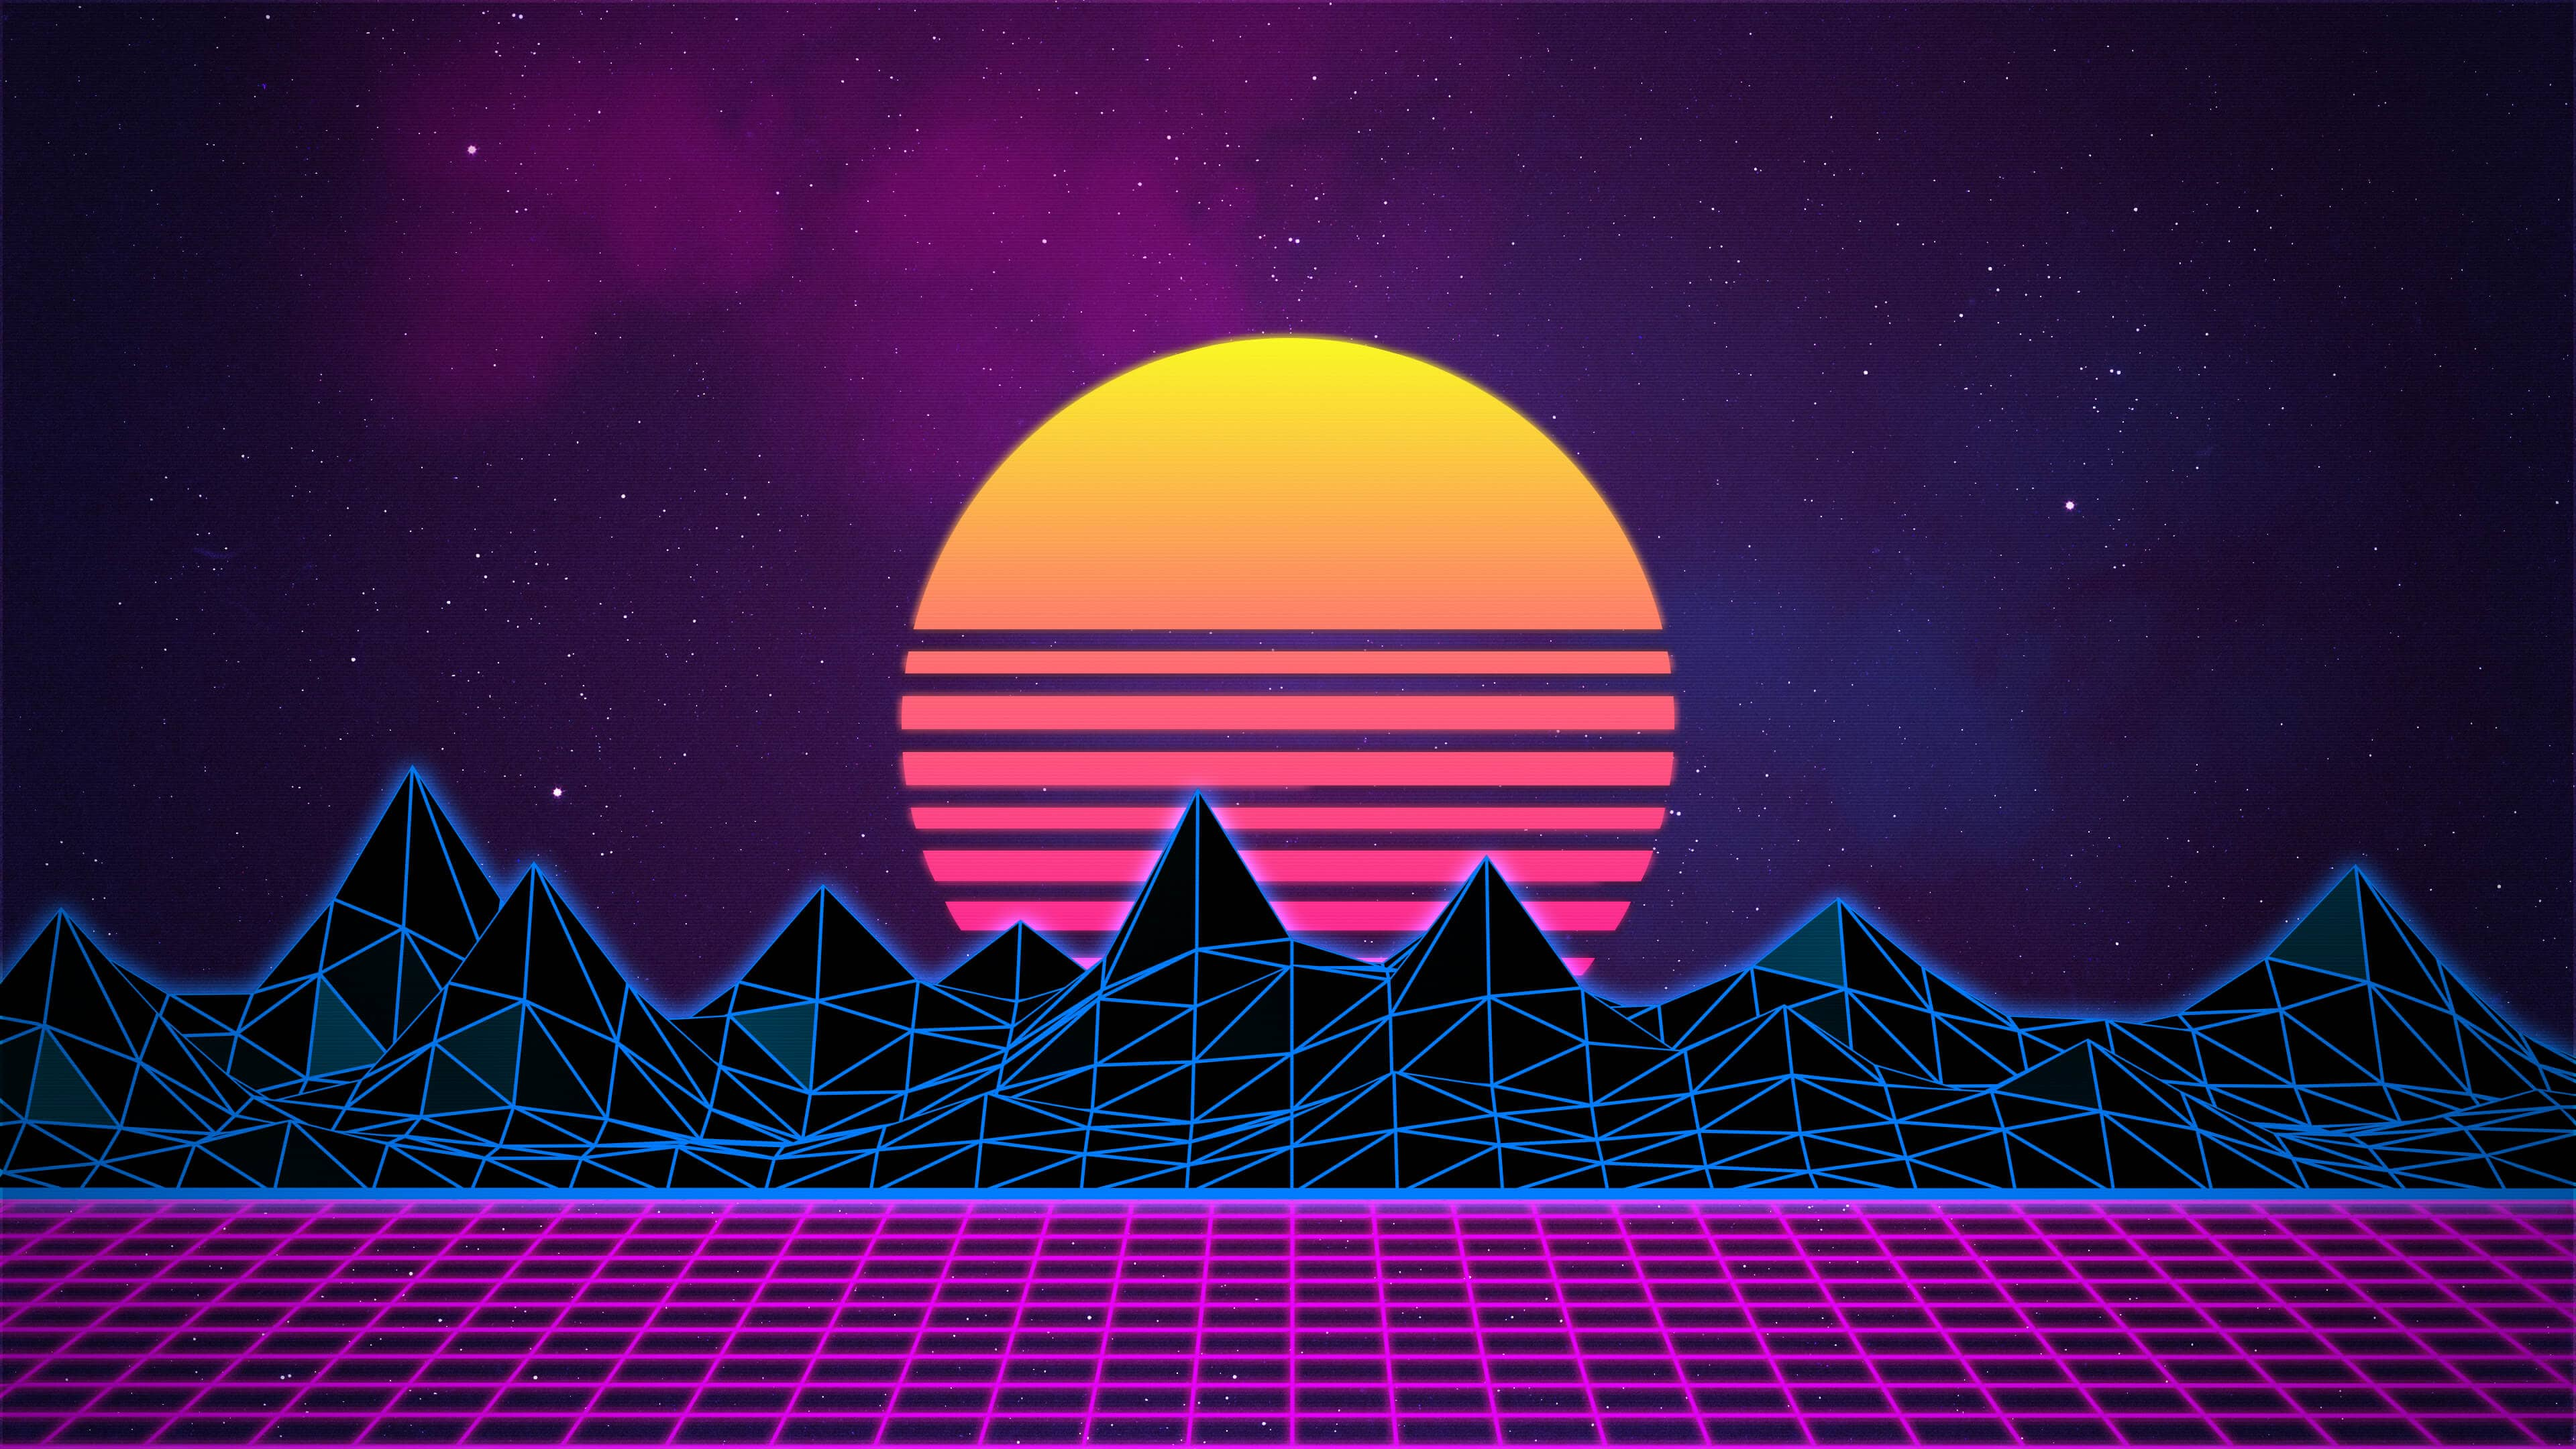 What's Up With All the Neon Pink Retro-80s Aesthetic Being